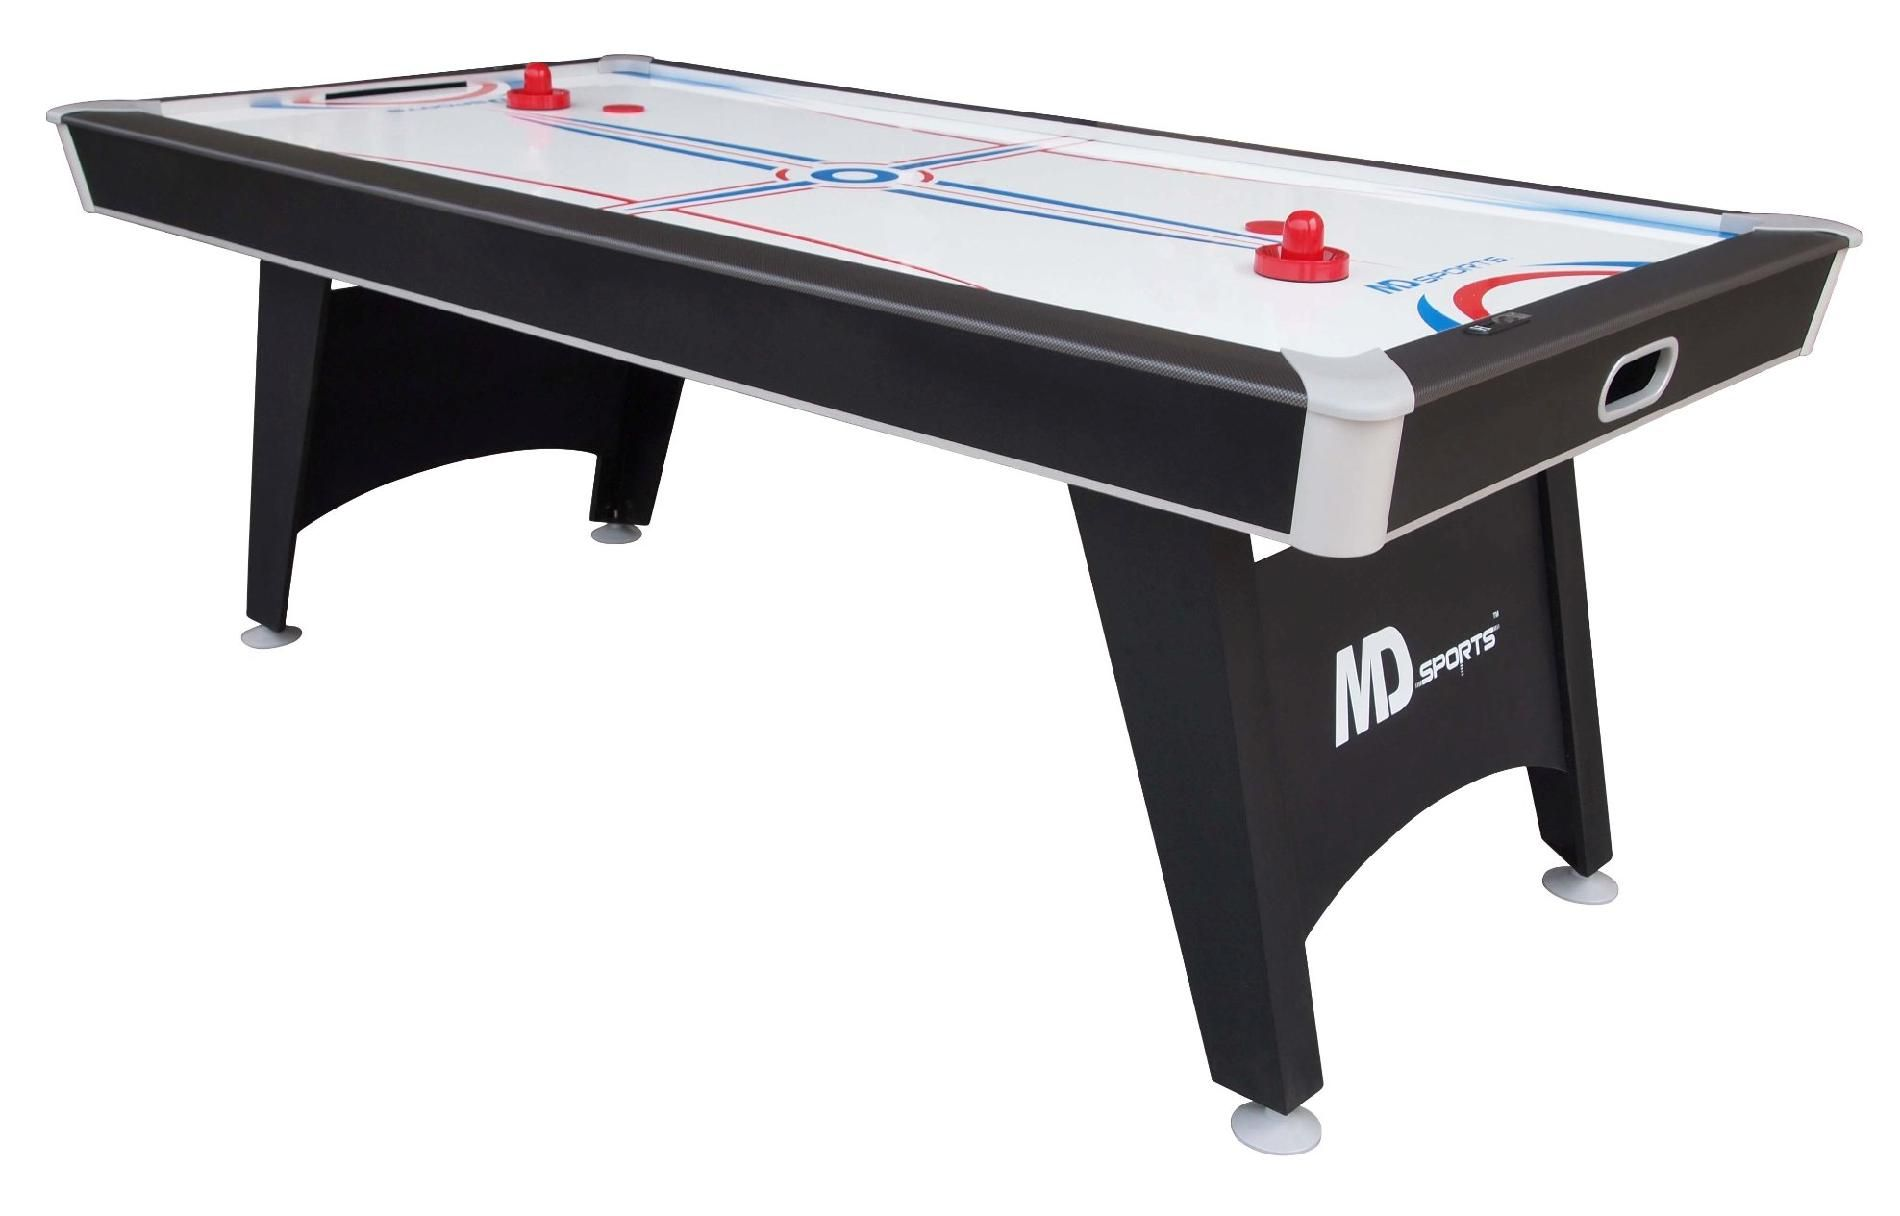 Md Sports Tournament Cup 7 Ft Air Hockey Table With Bonus